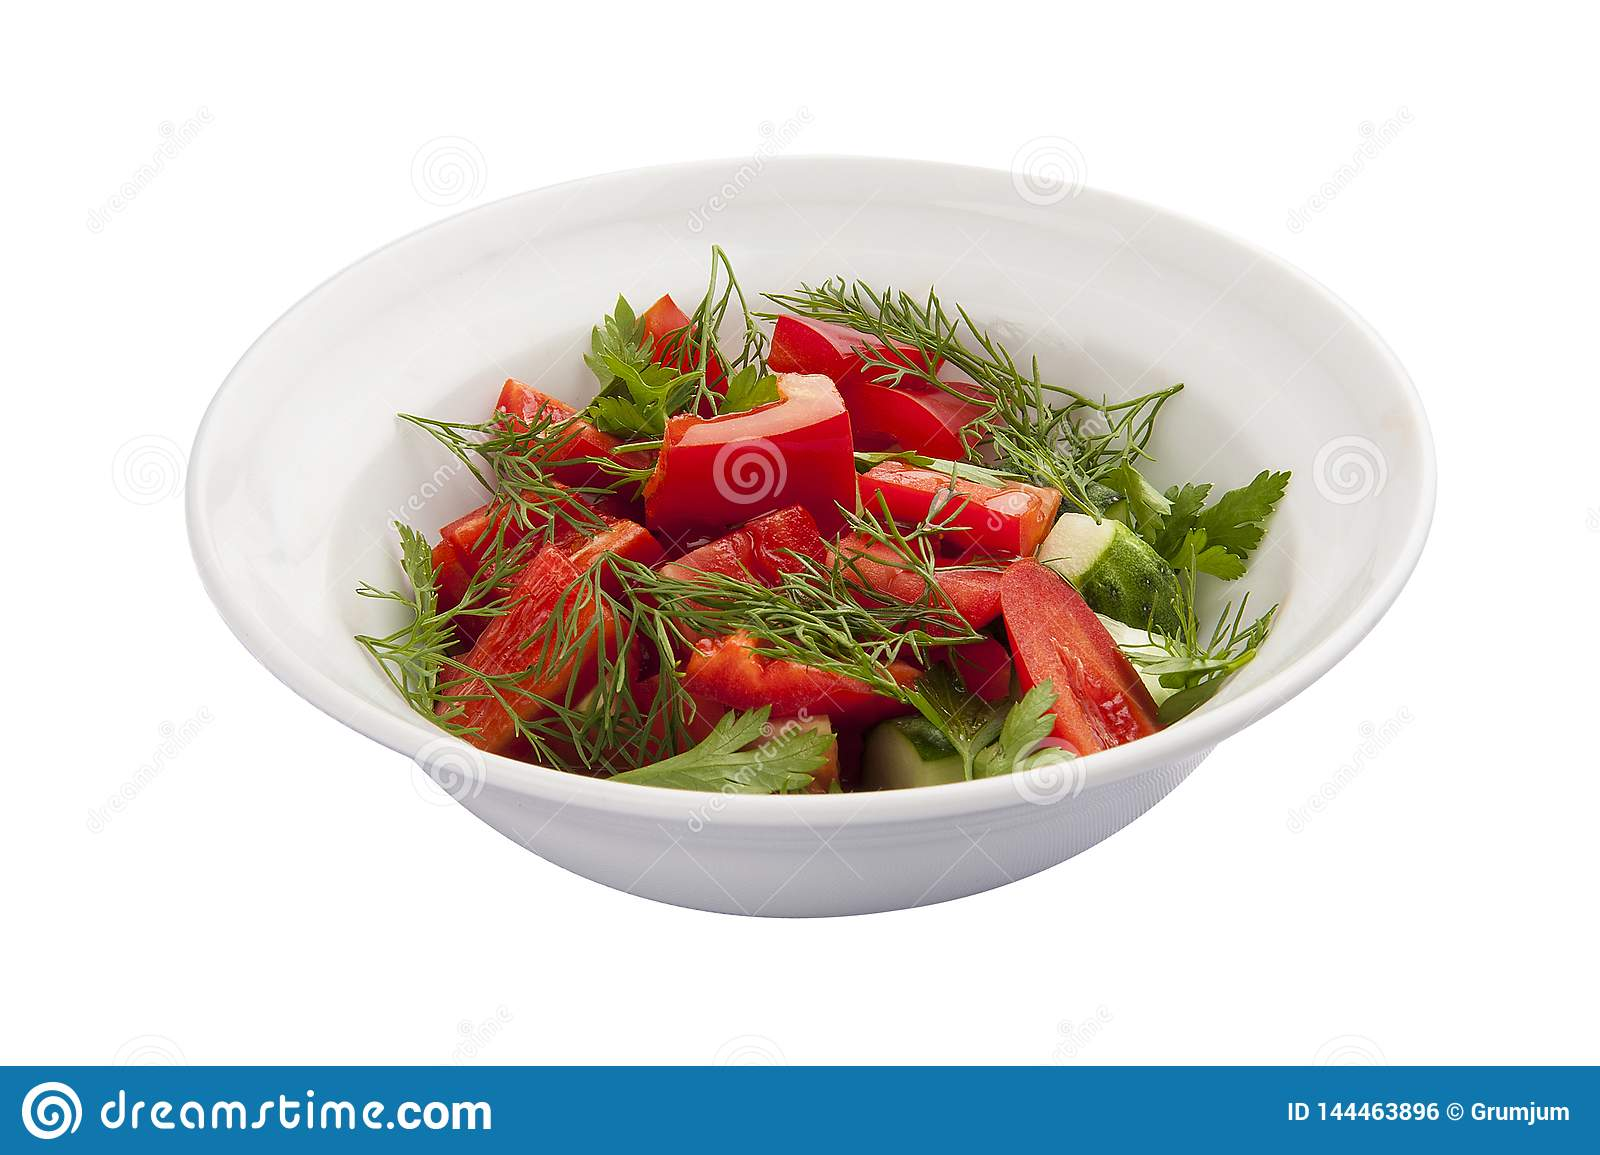 Breakfast. Vegetable salad with tomato and cucumber